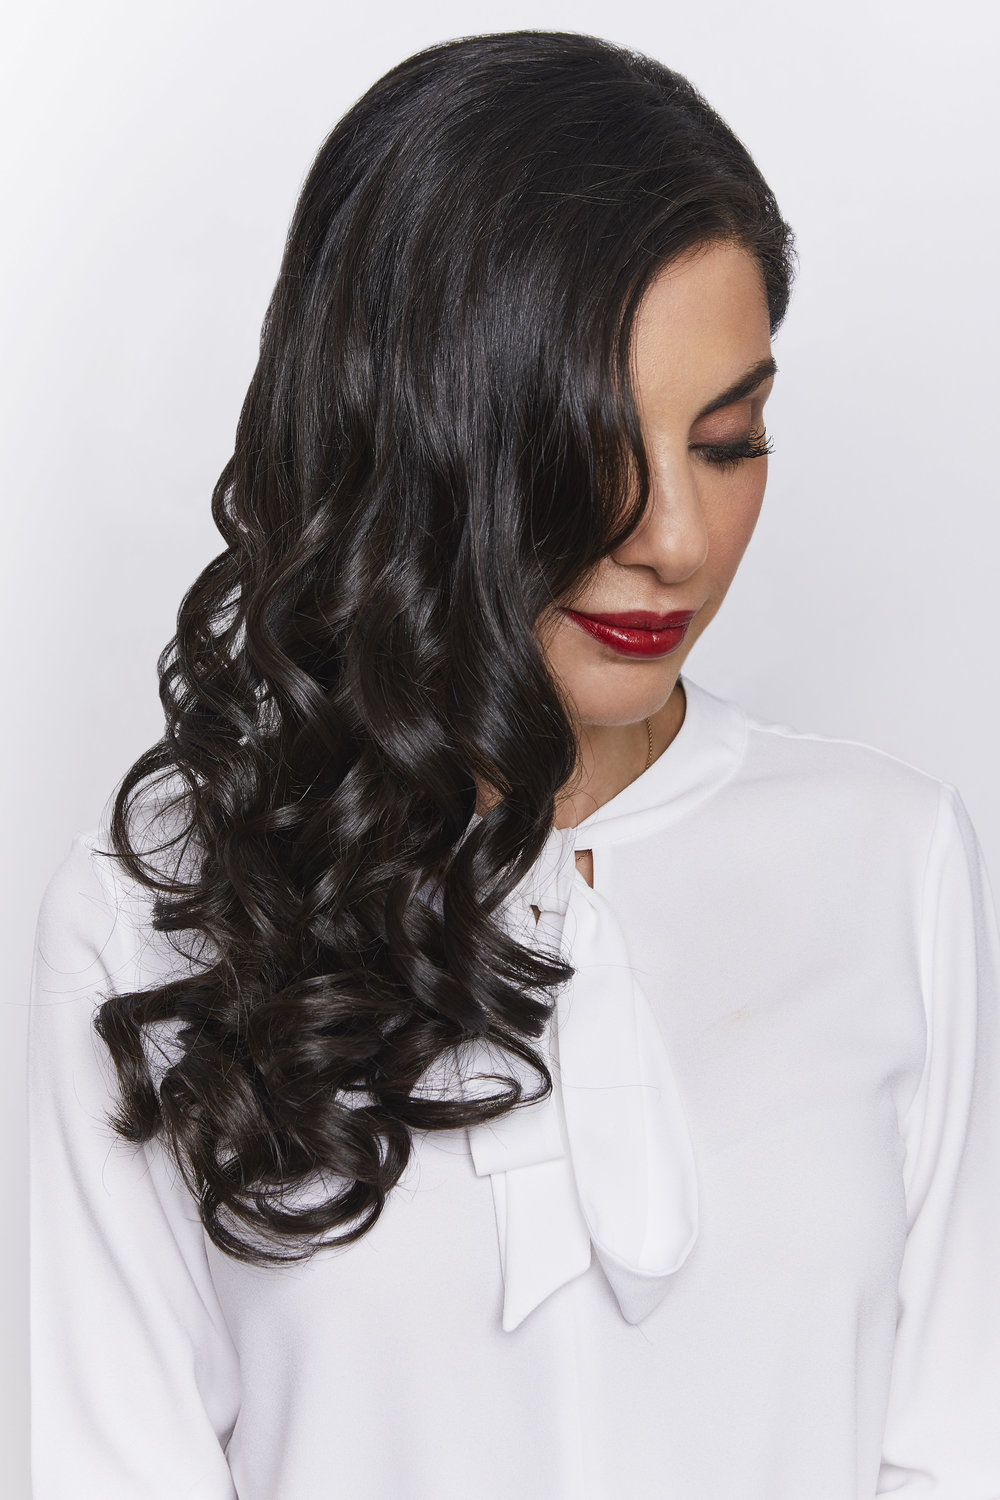 BE CURLY  Fun, fresh, and feminine - lots of bouncy curls.